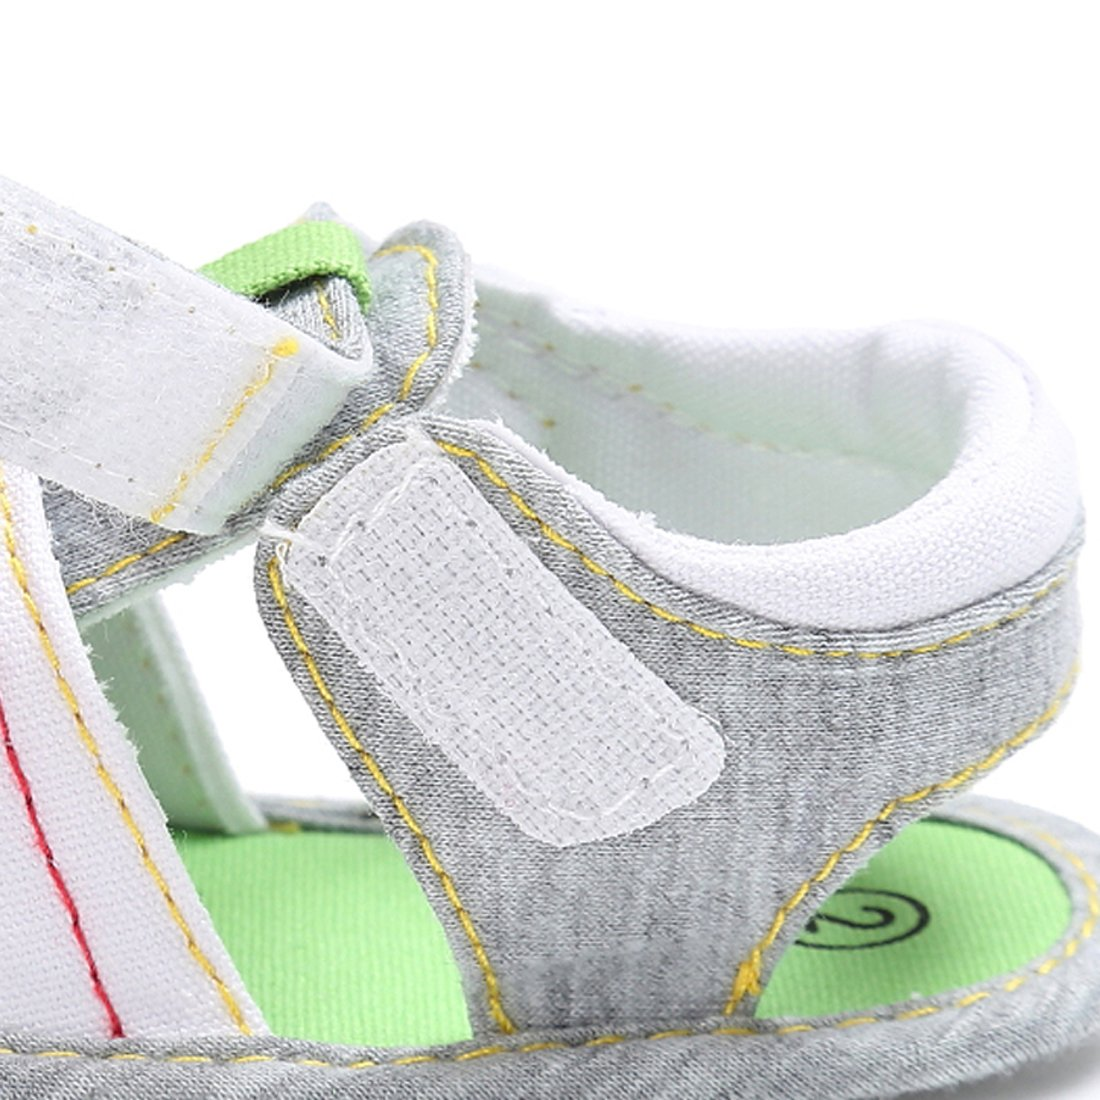 Kimber ❤️ Toddler Baby Girl Boy Sandals Canvas Anti-Slip Summer Velcro Rubber Sole Shoes for First Walker Size 3.5 to 6 M